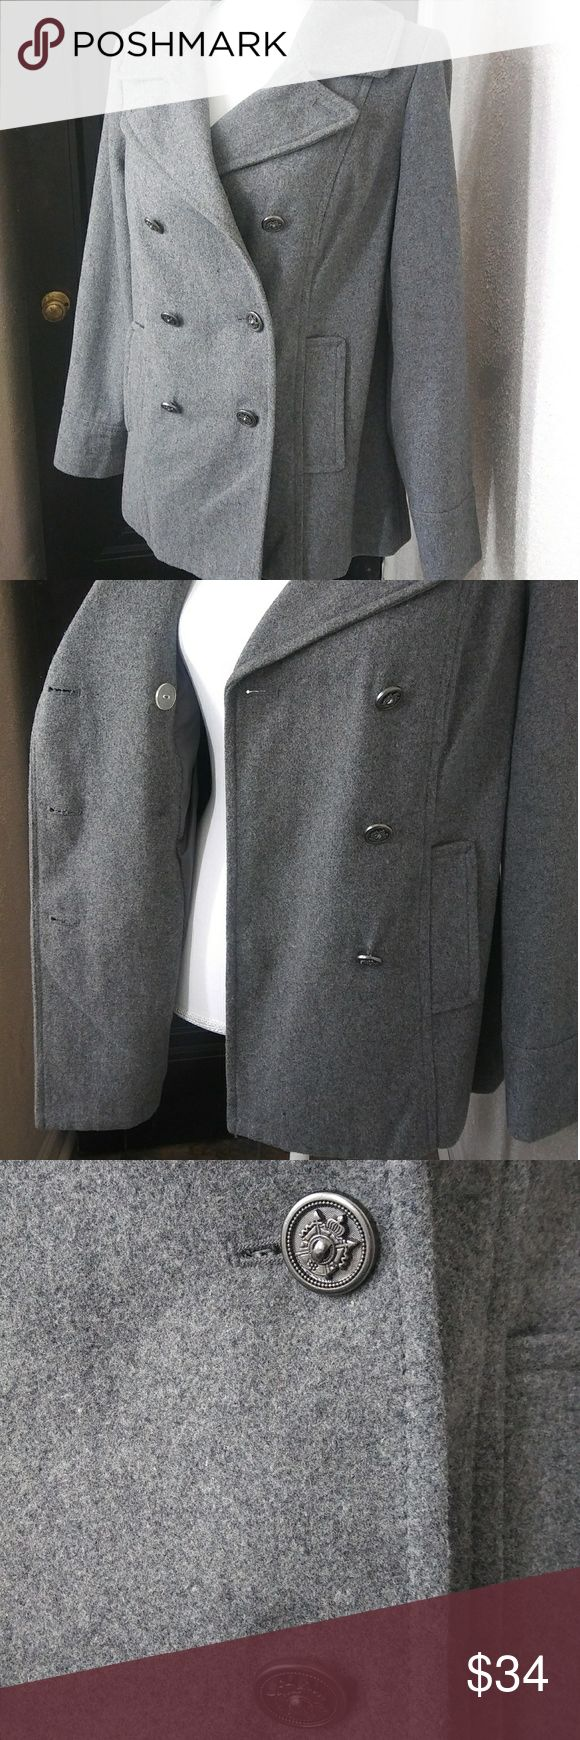 OLD NAVY Pea Coat *EUC* OLD NAVY Pea Coat. Excellent condition, no flaws. Only worn a few times. 3 large outside buttons and one inside. Pockets. Fitted in sides and back. Also, slit in back to allow for that booty ;) Old Navy Jackets & Coats Pea Coats